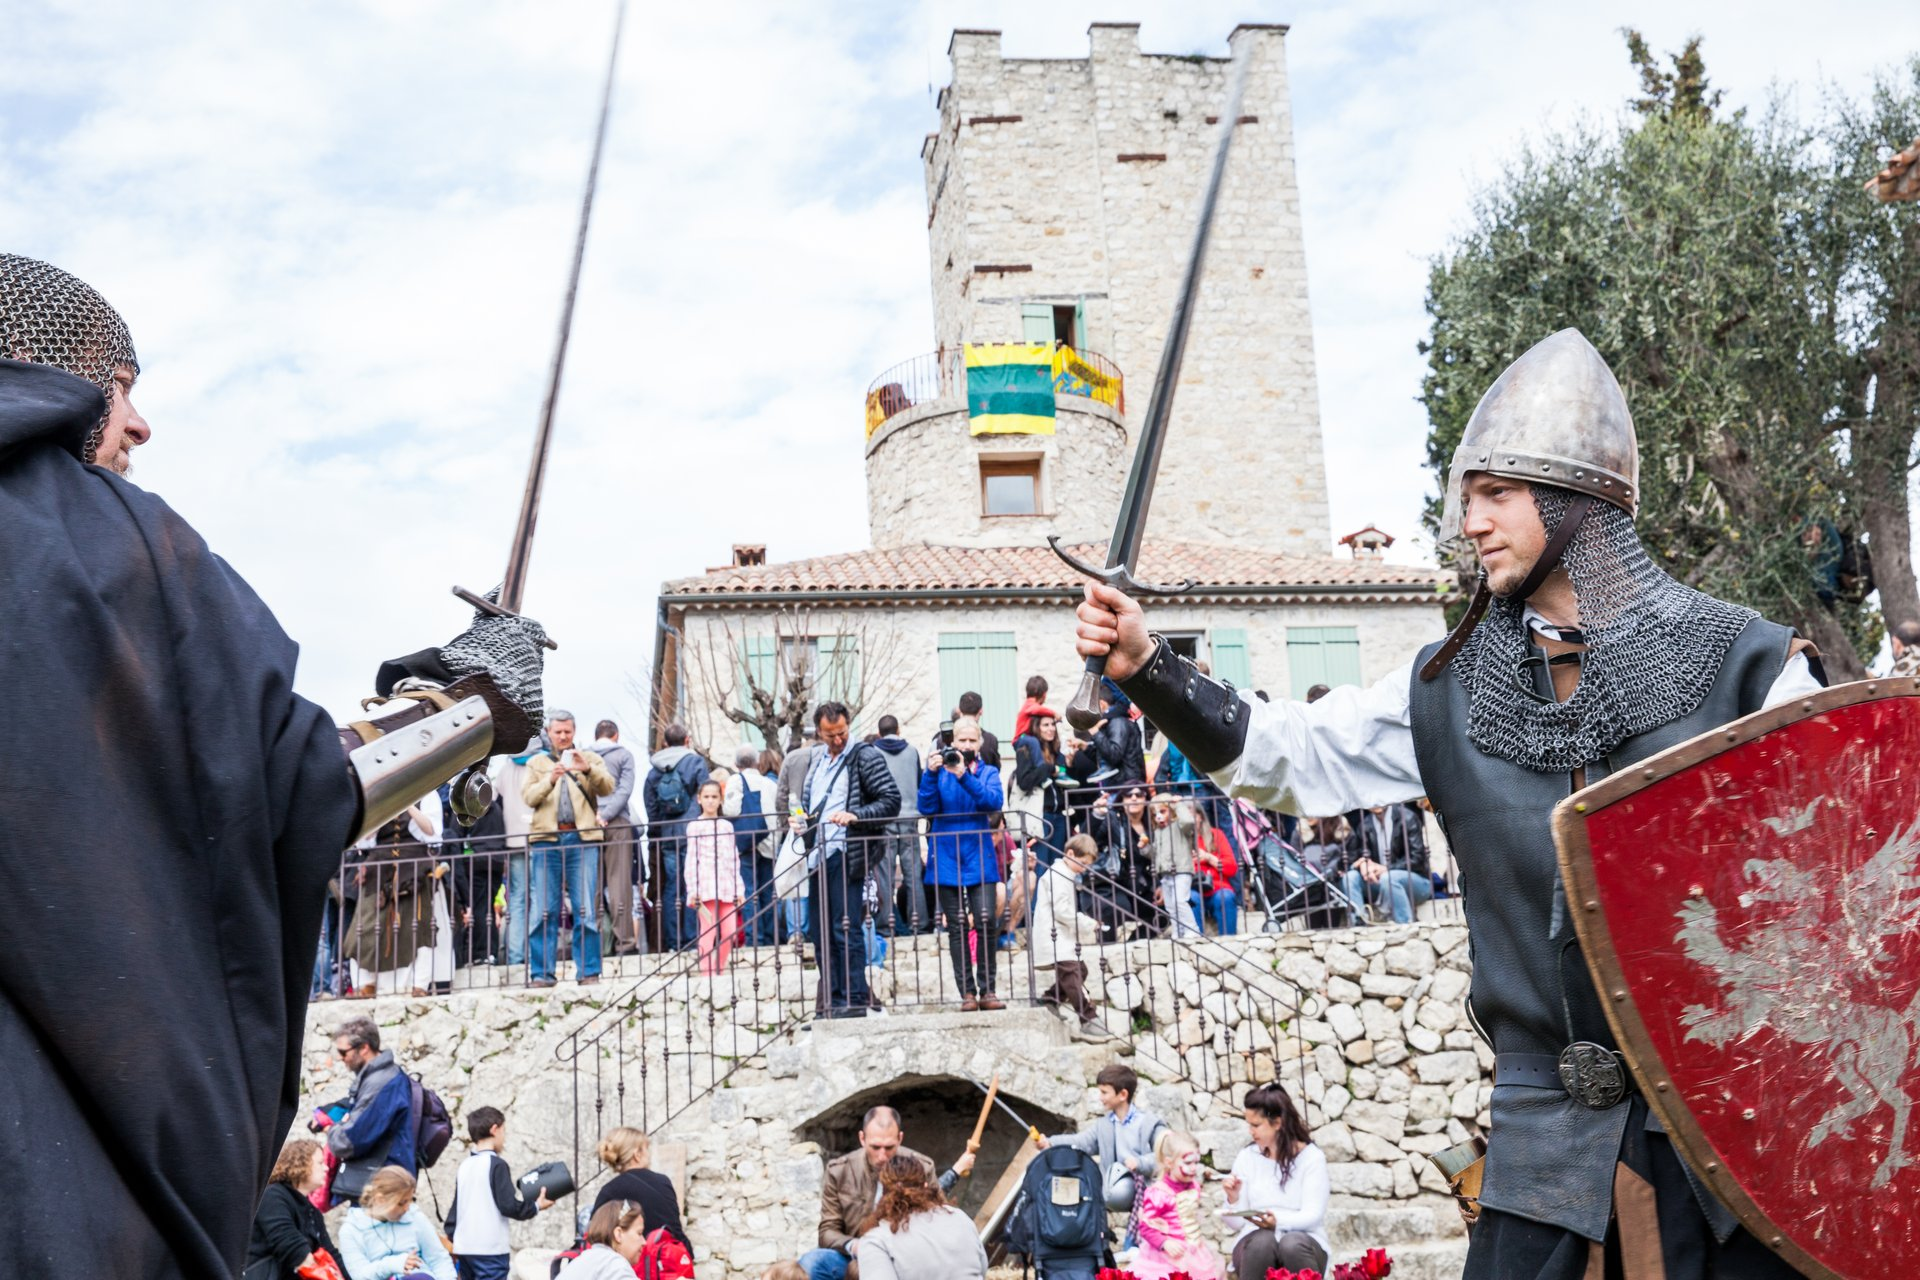 Best time for Tourrette-Levens Medieval Festival in Provence & French Riviera 2020